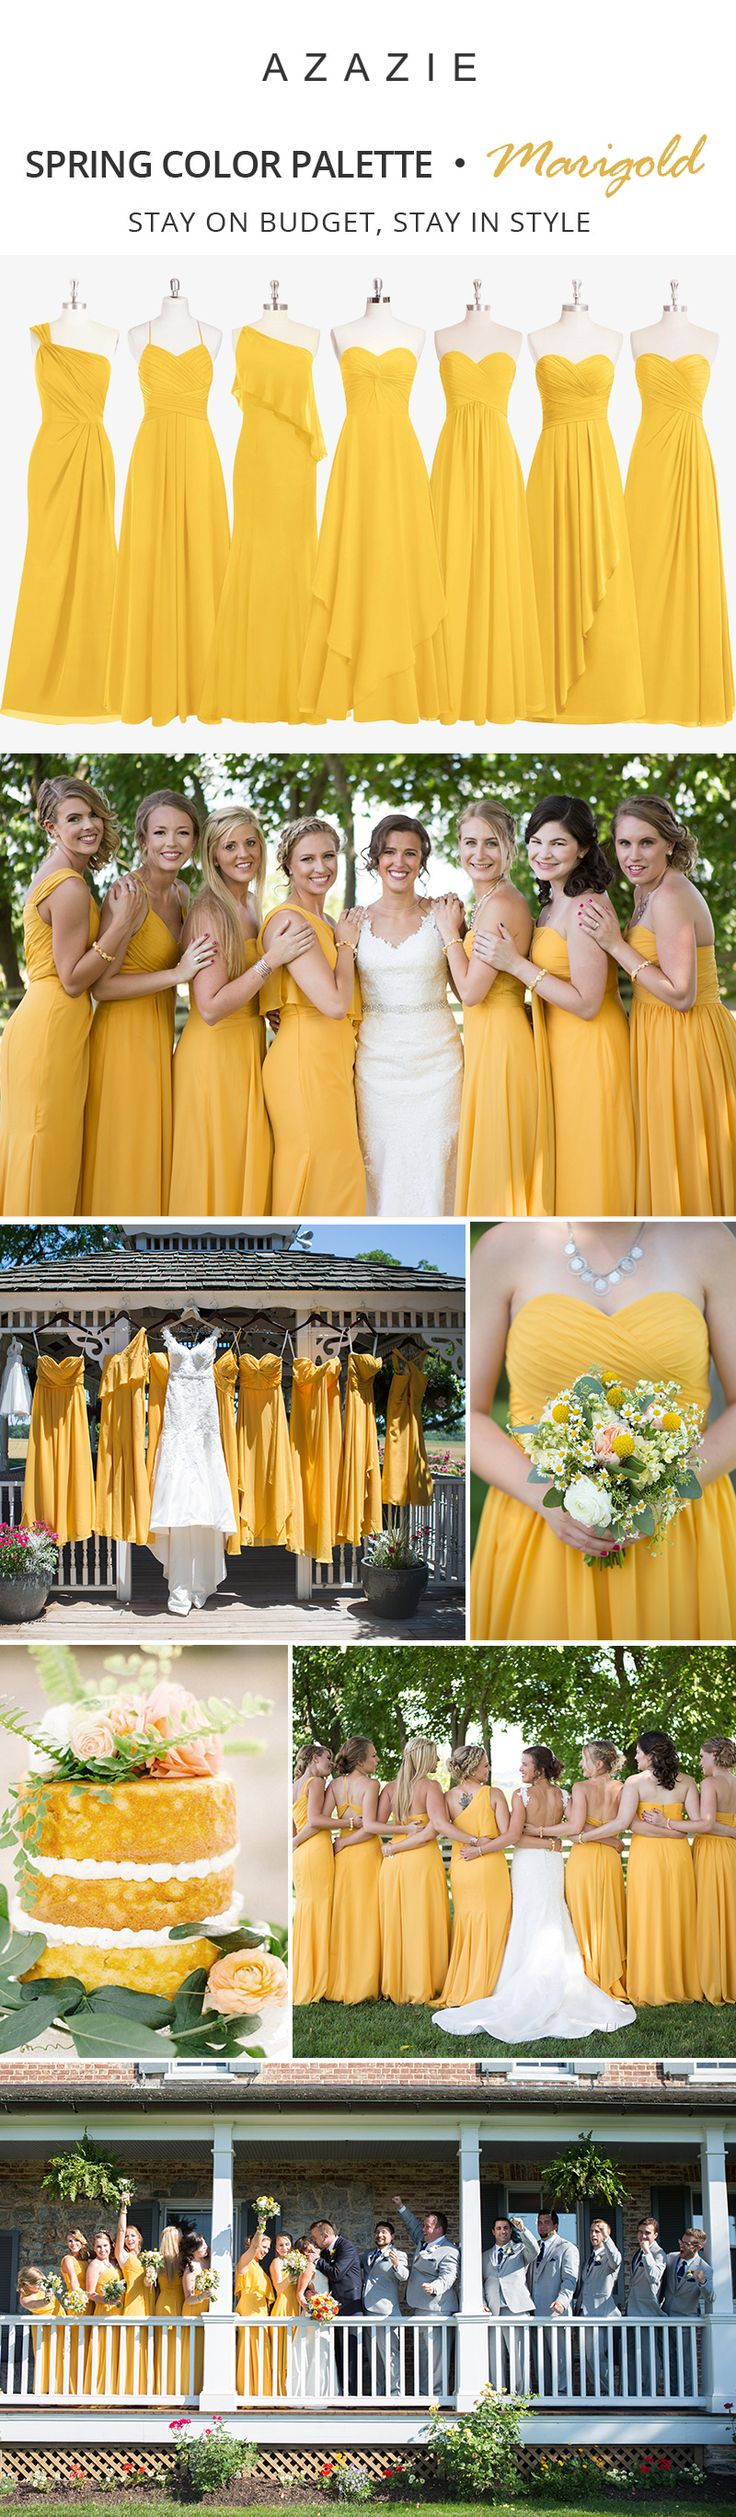 1043 best bridesmaid dresses images on pinterest bridesmaids dress your bridesmaids in this beautiful golden yellow available in sizes 0 30 and ombrellifo Image collections